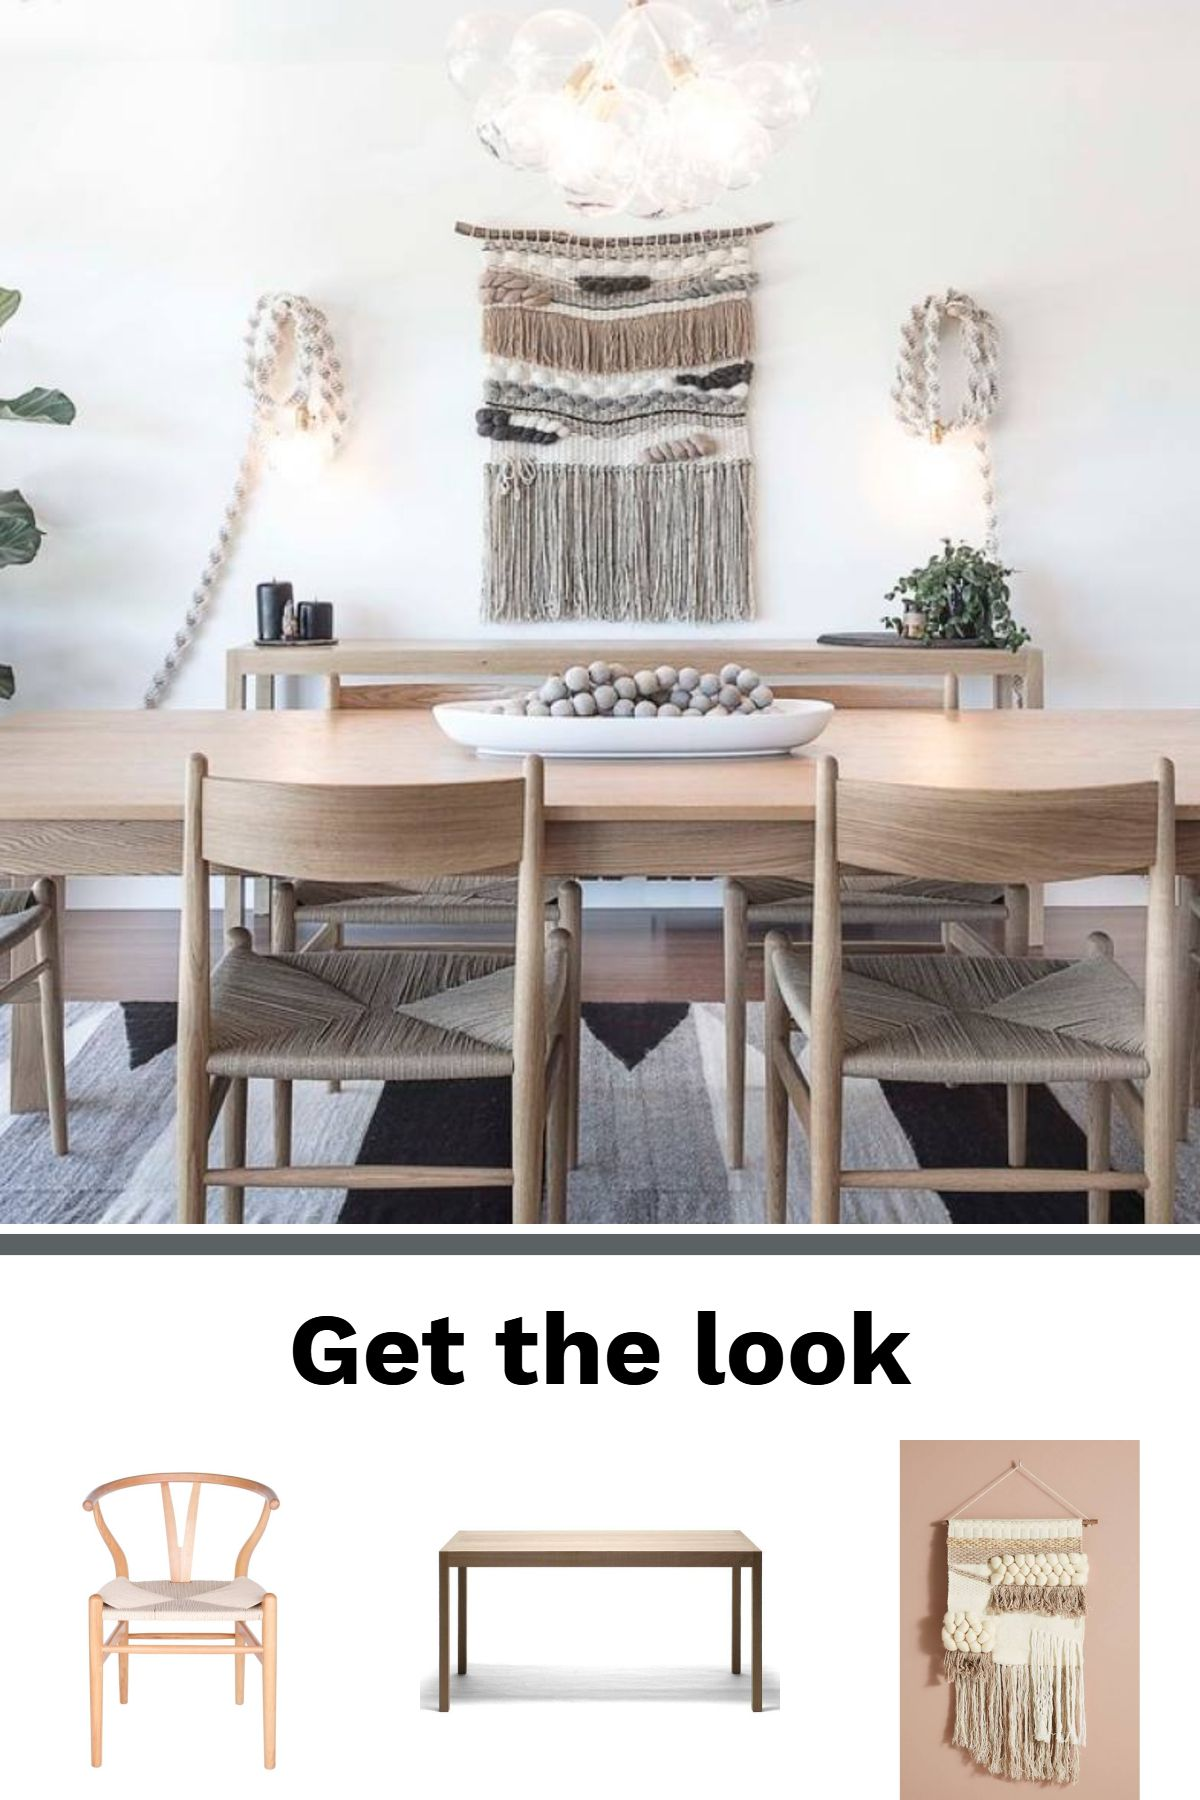 Room redo: Get the look: Modern bohemian dining room images